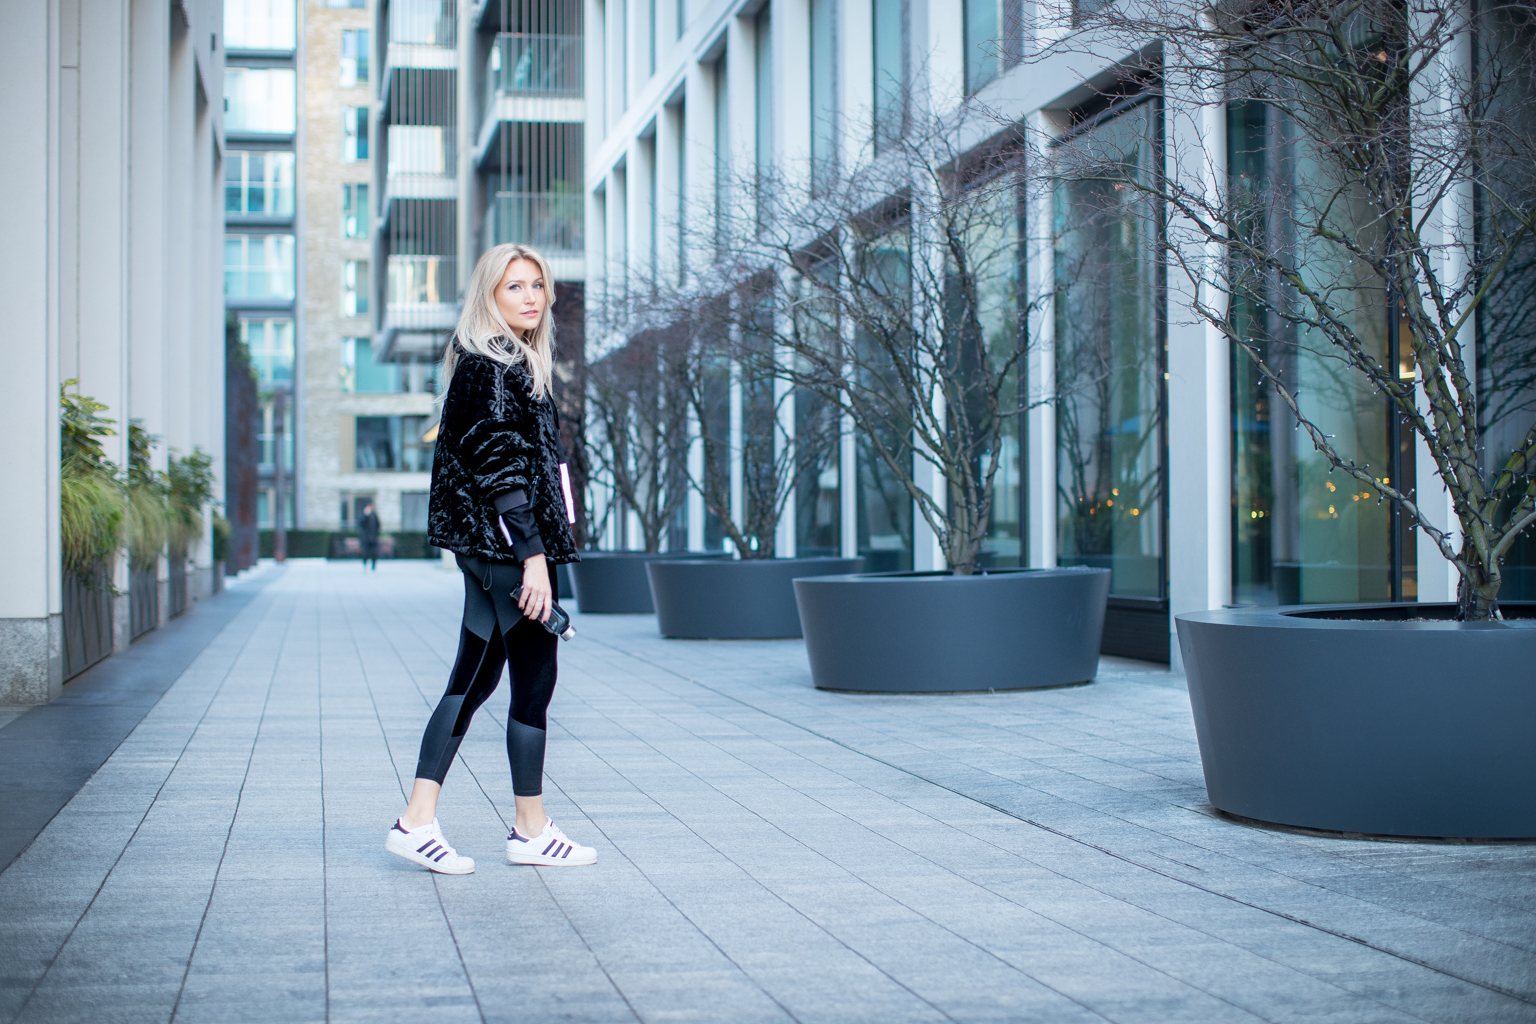 Fitness On Toast Faya Blog Girl Healthy Workout Fashion DKNY Sport London England West End Photoshoot OOTD Luxe Sport Lux Look-11